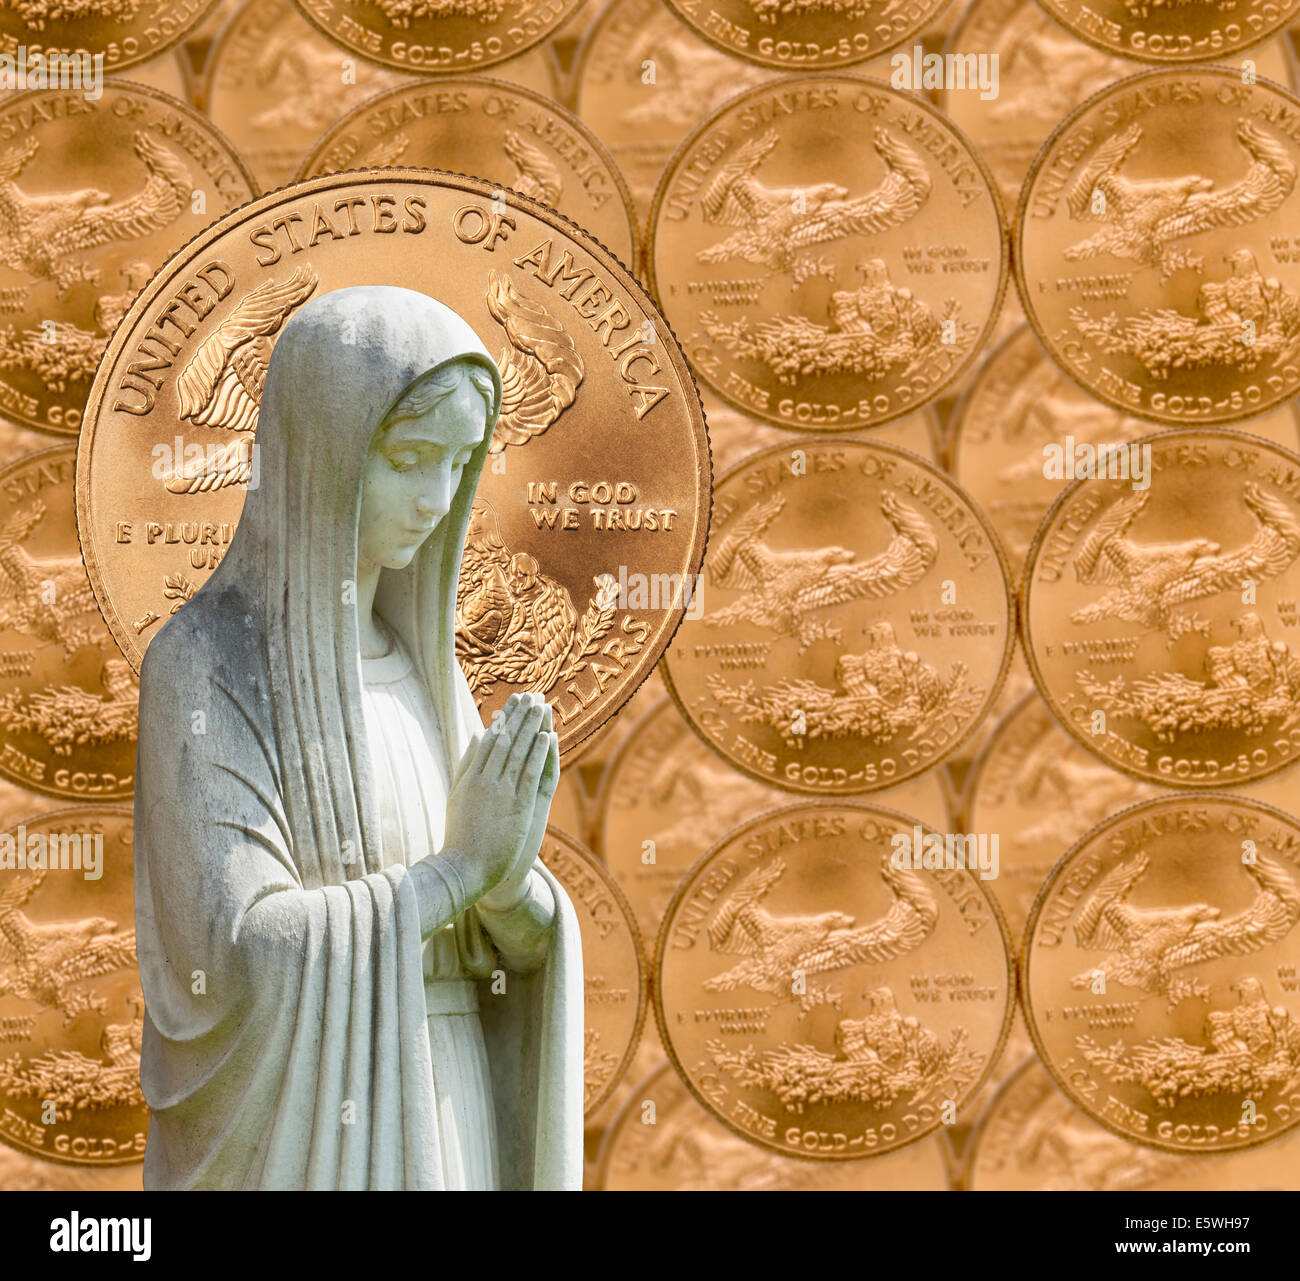 Virgin Mary with US currency background - linking religion with money or wealth concept - Stock Image